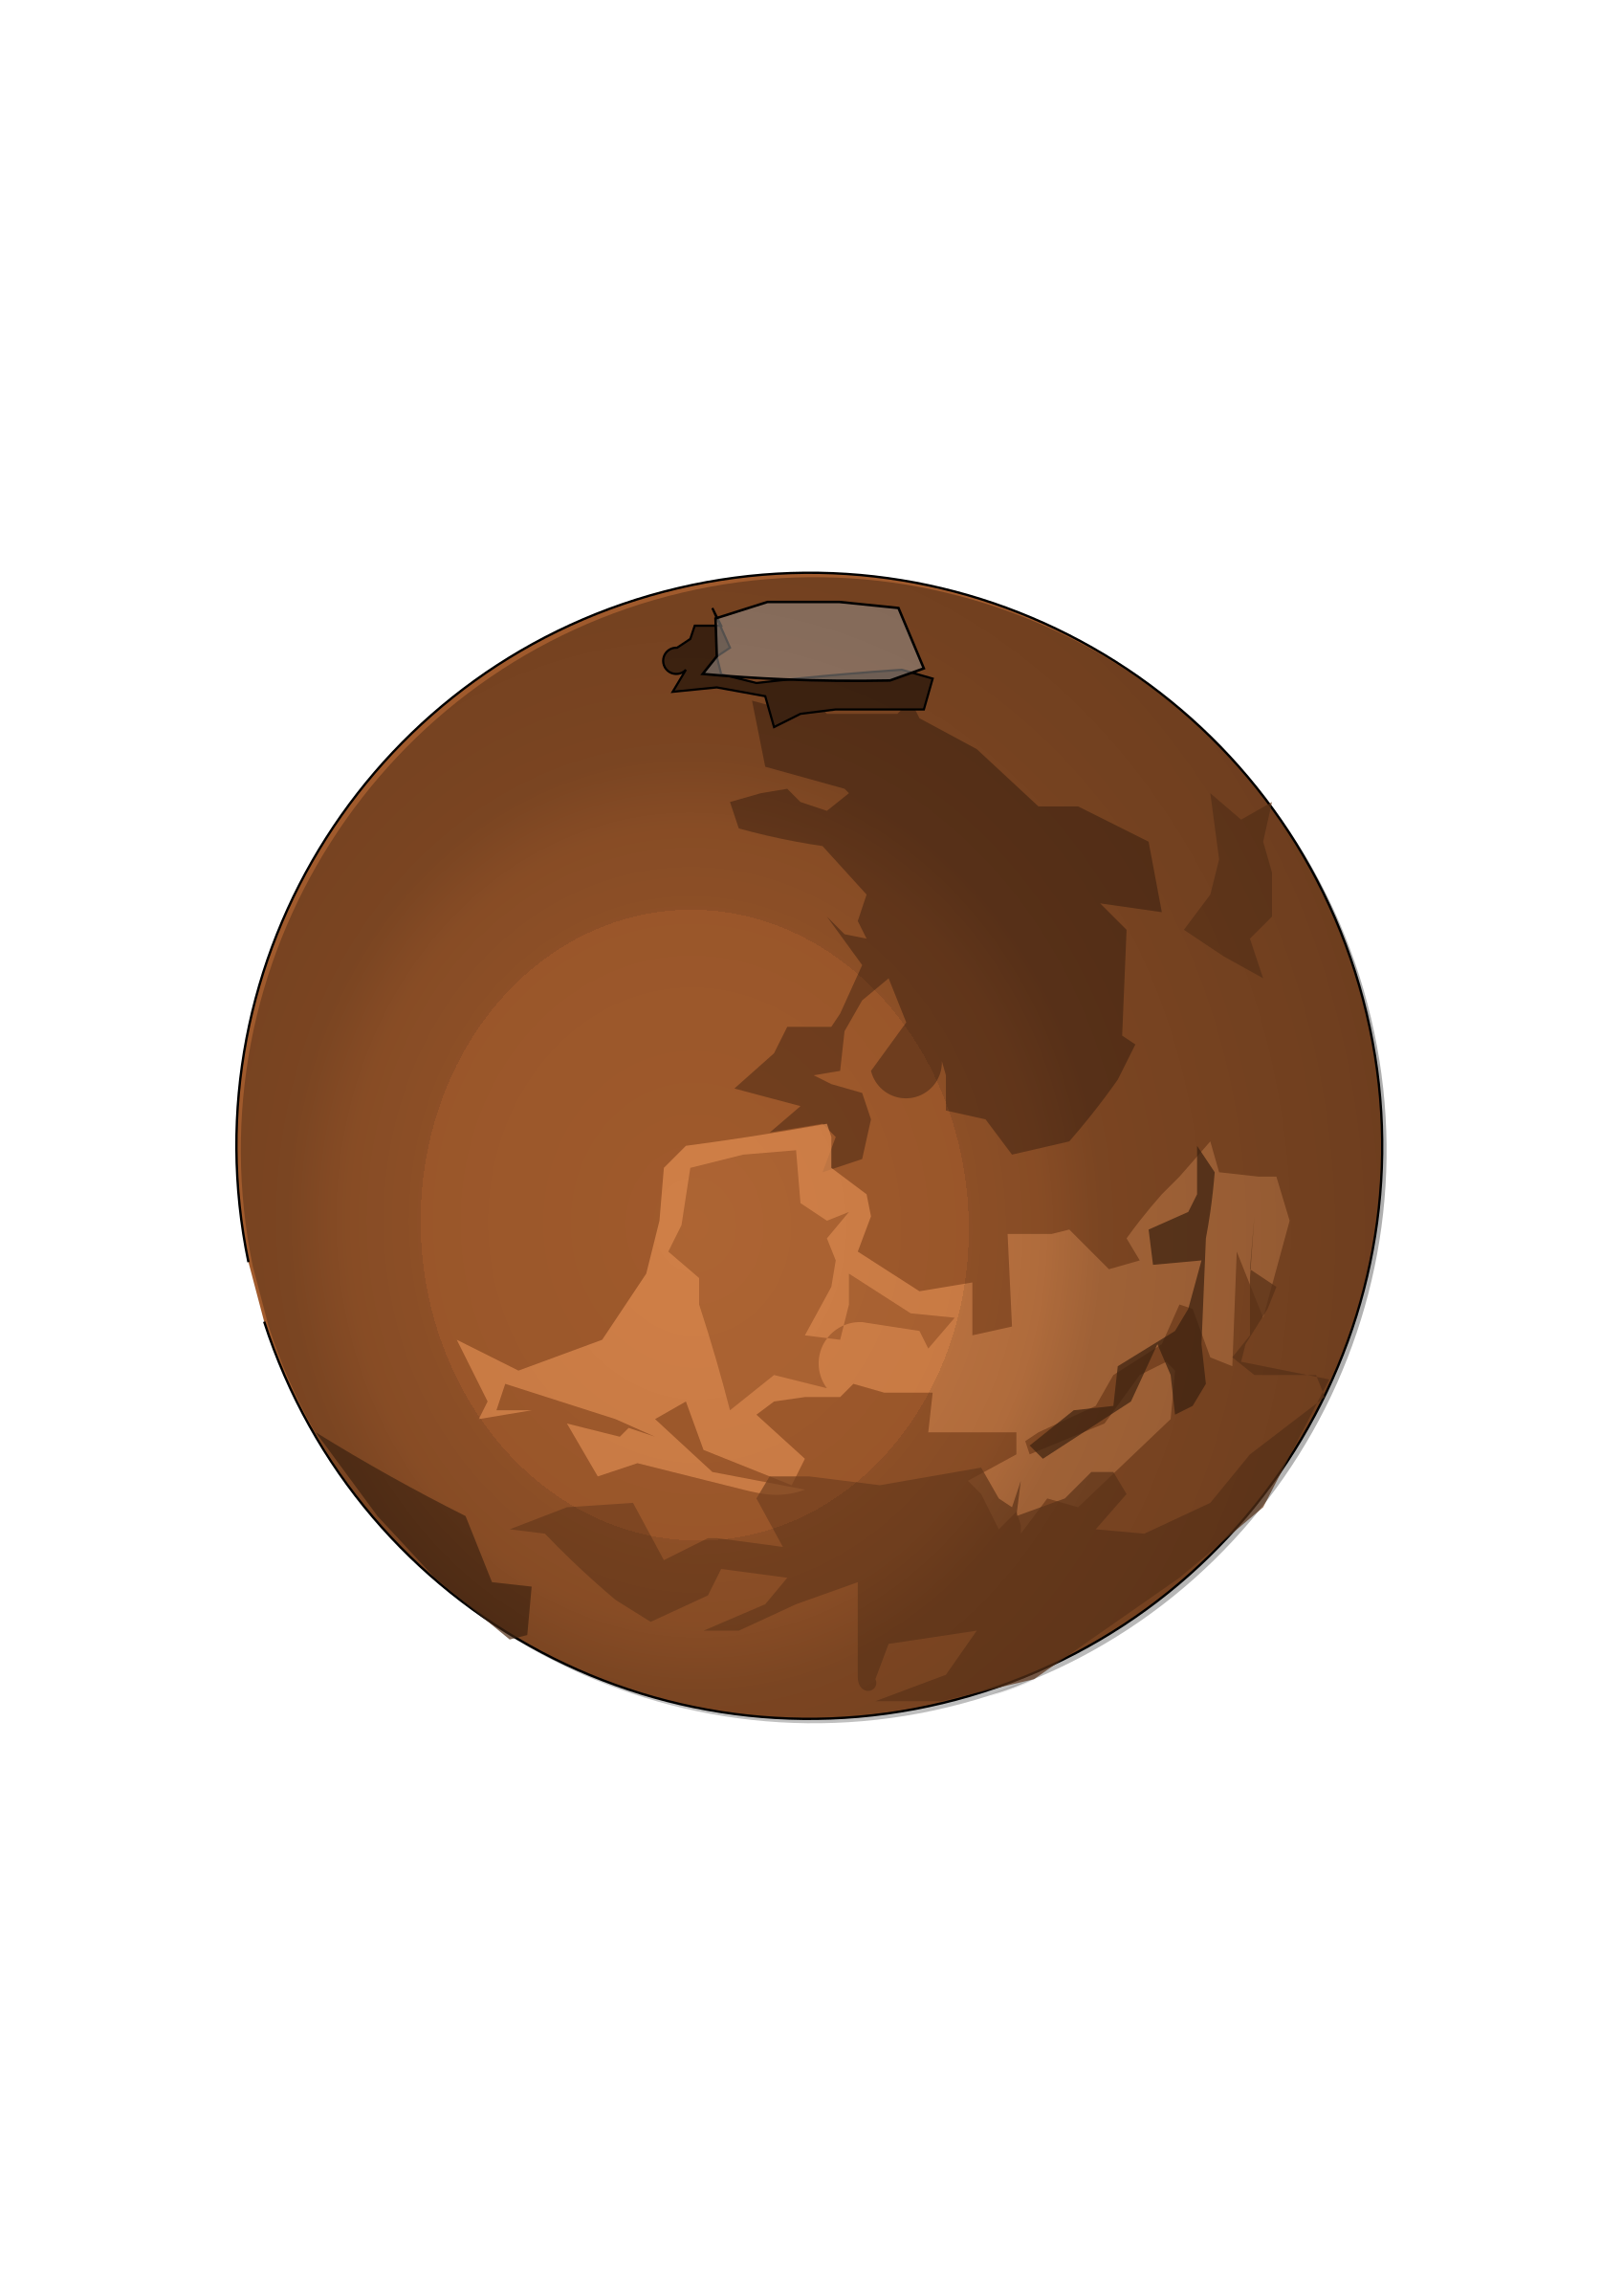 Icons png free and. Mars clipart planet outline